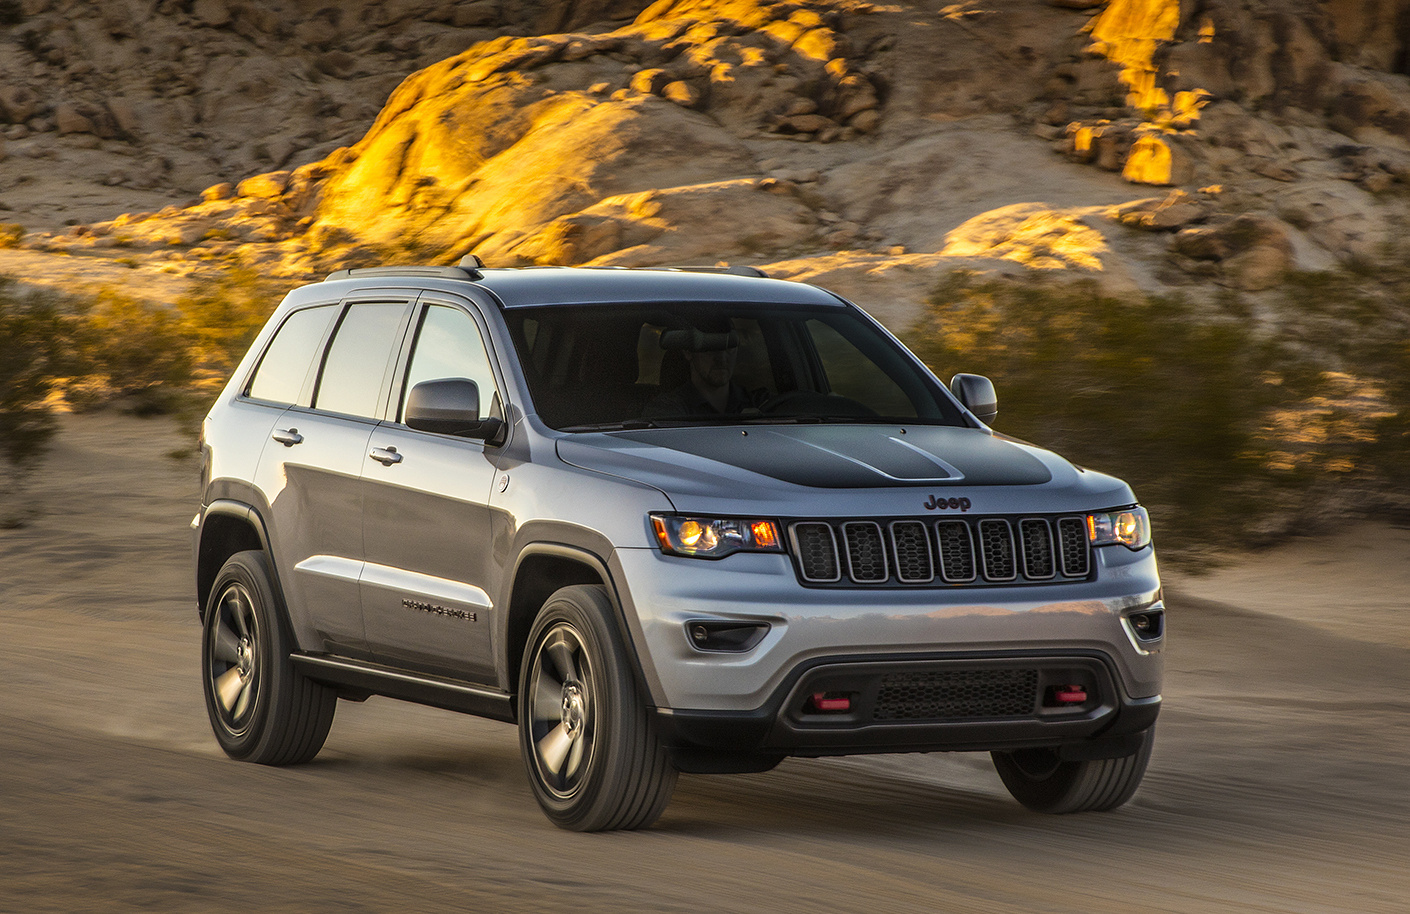 jeep grand cherokee picture - photo #13